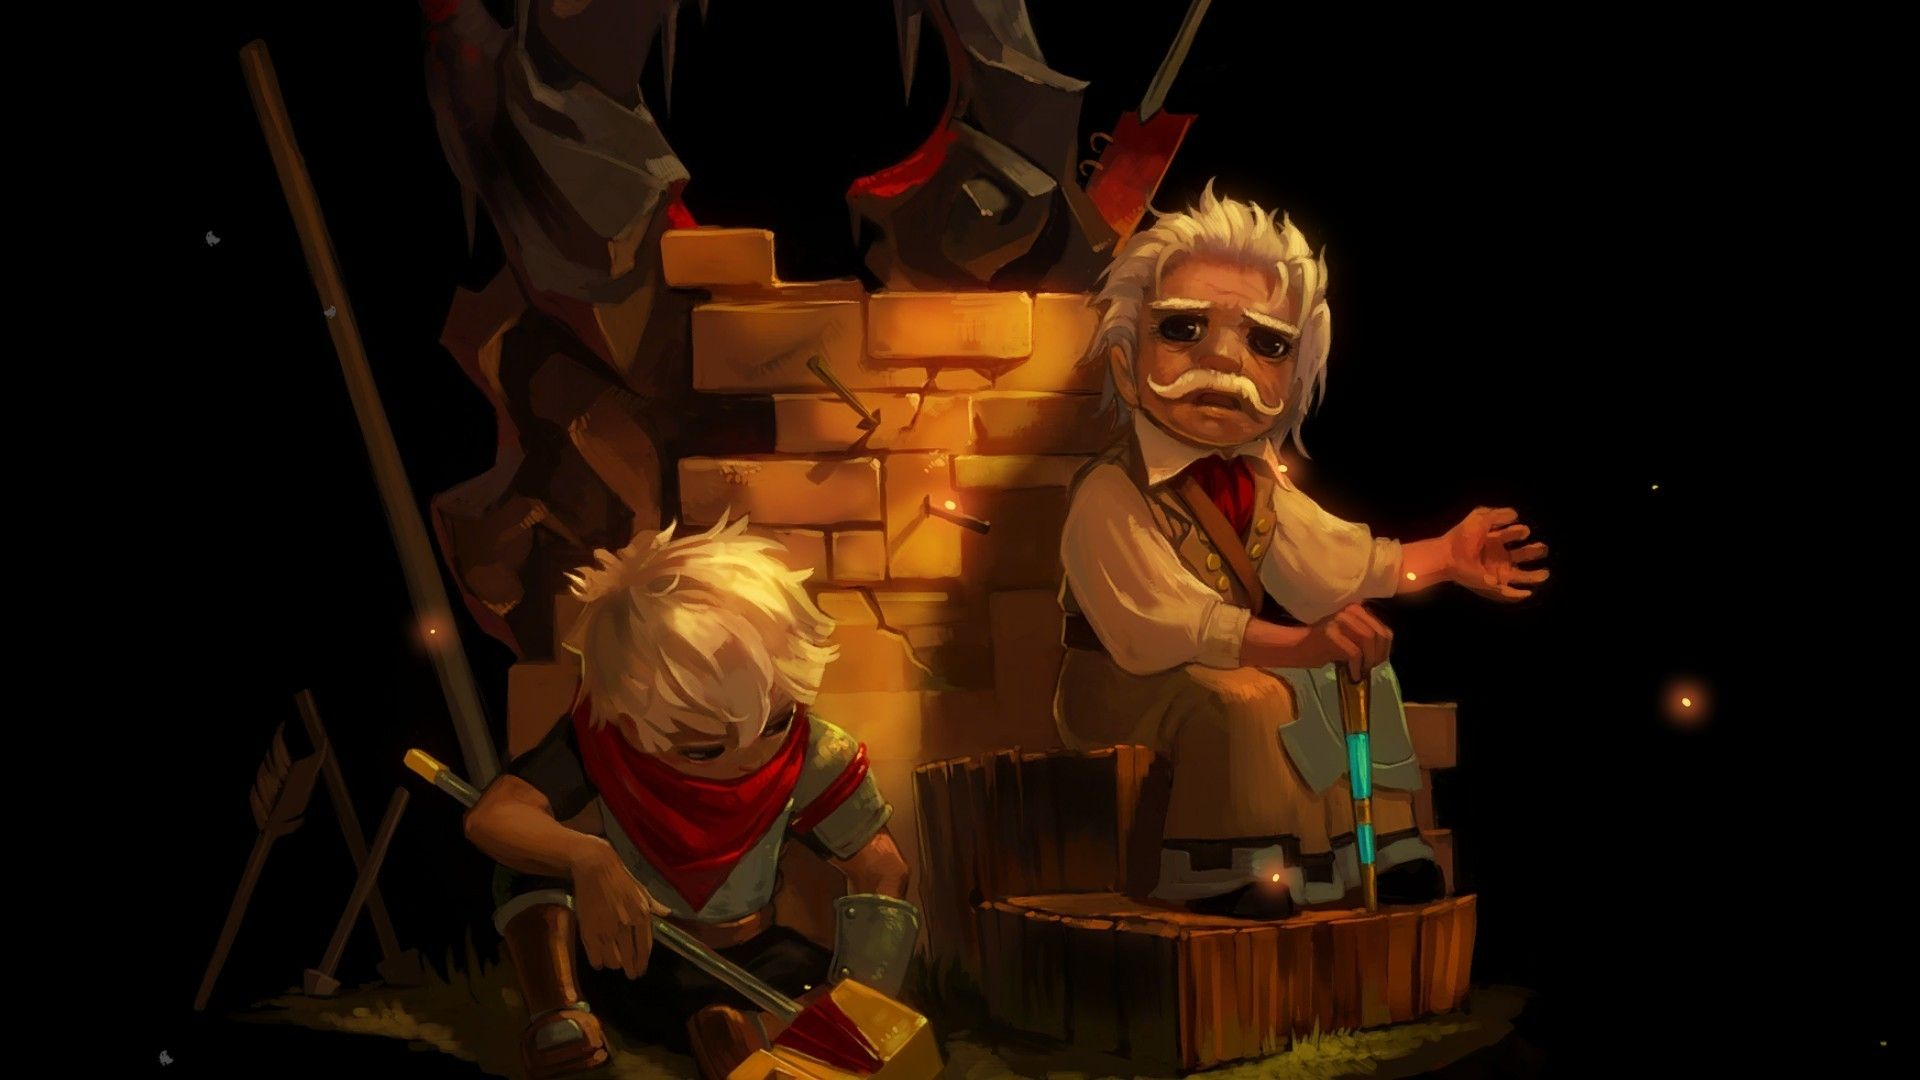 Bastion Wallpapers Bastion Game Artwork Kids Playing